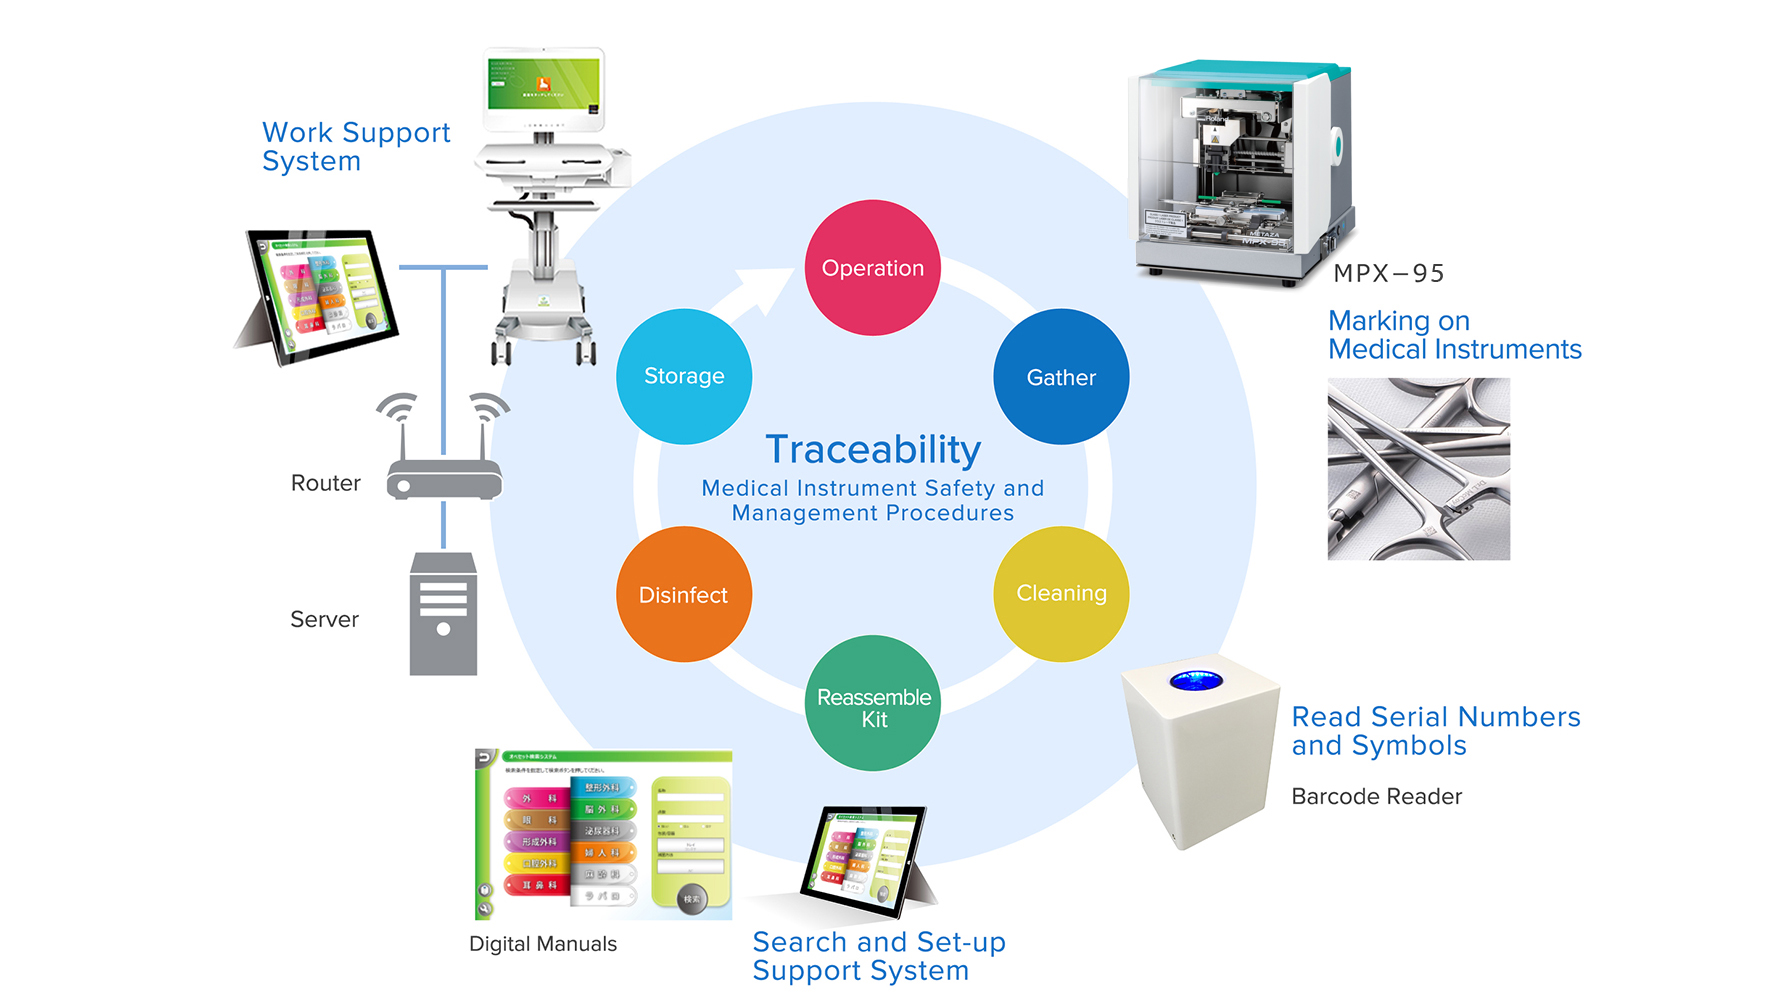 Technology for ensuring traceability and process management